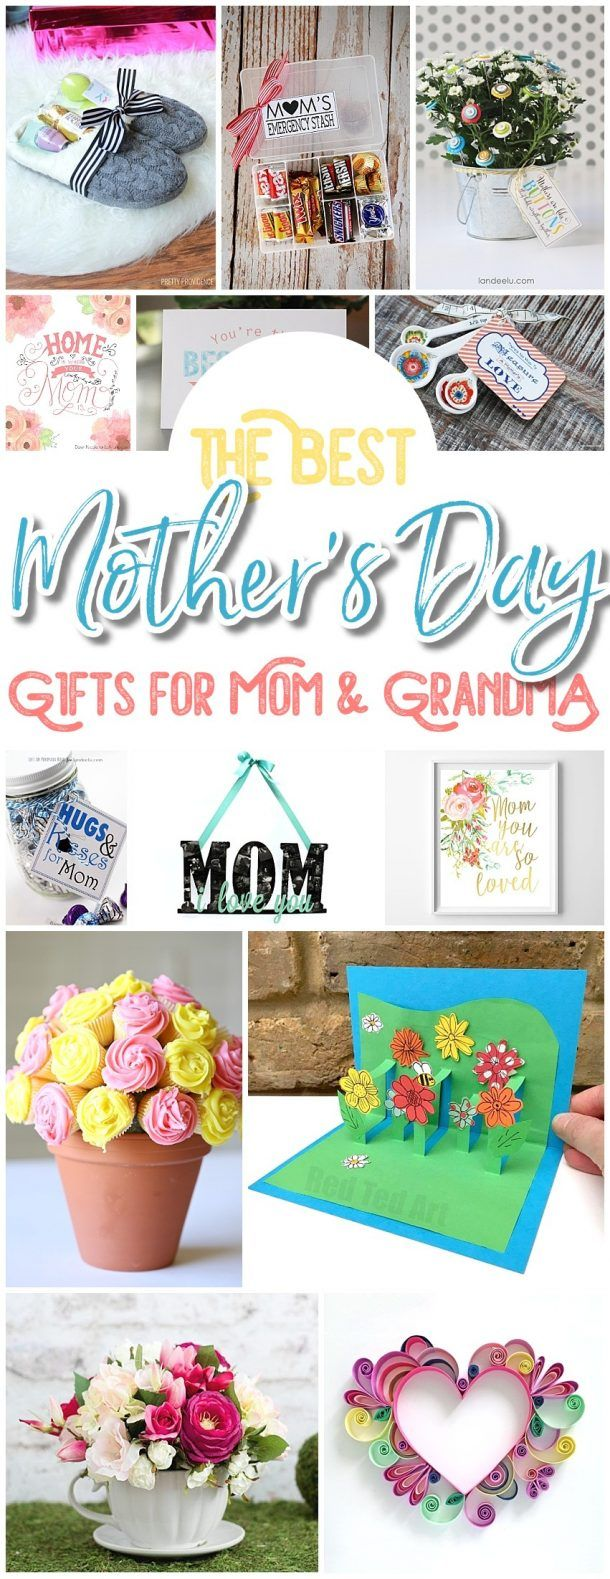 The best diy mothers day do it yourself gift ideas craft projects the best diy mothers day do it yourself solutioingenieria Choice Image